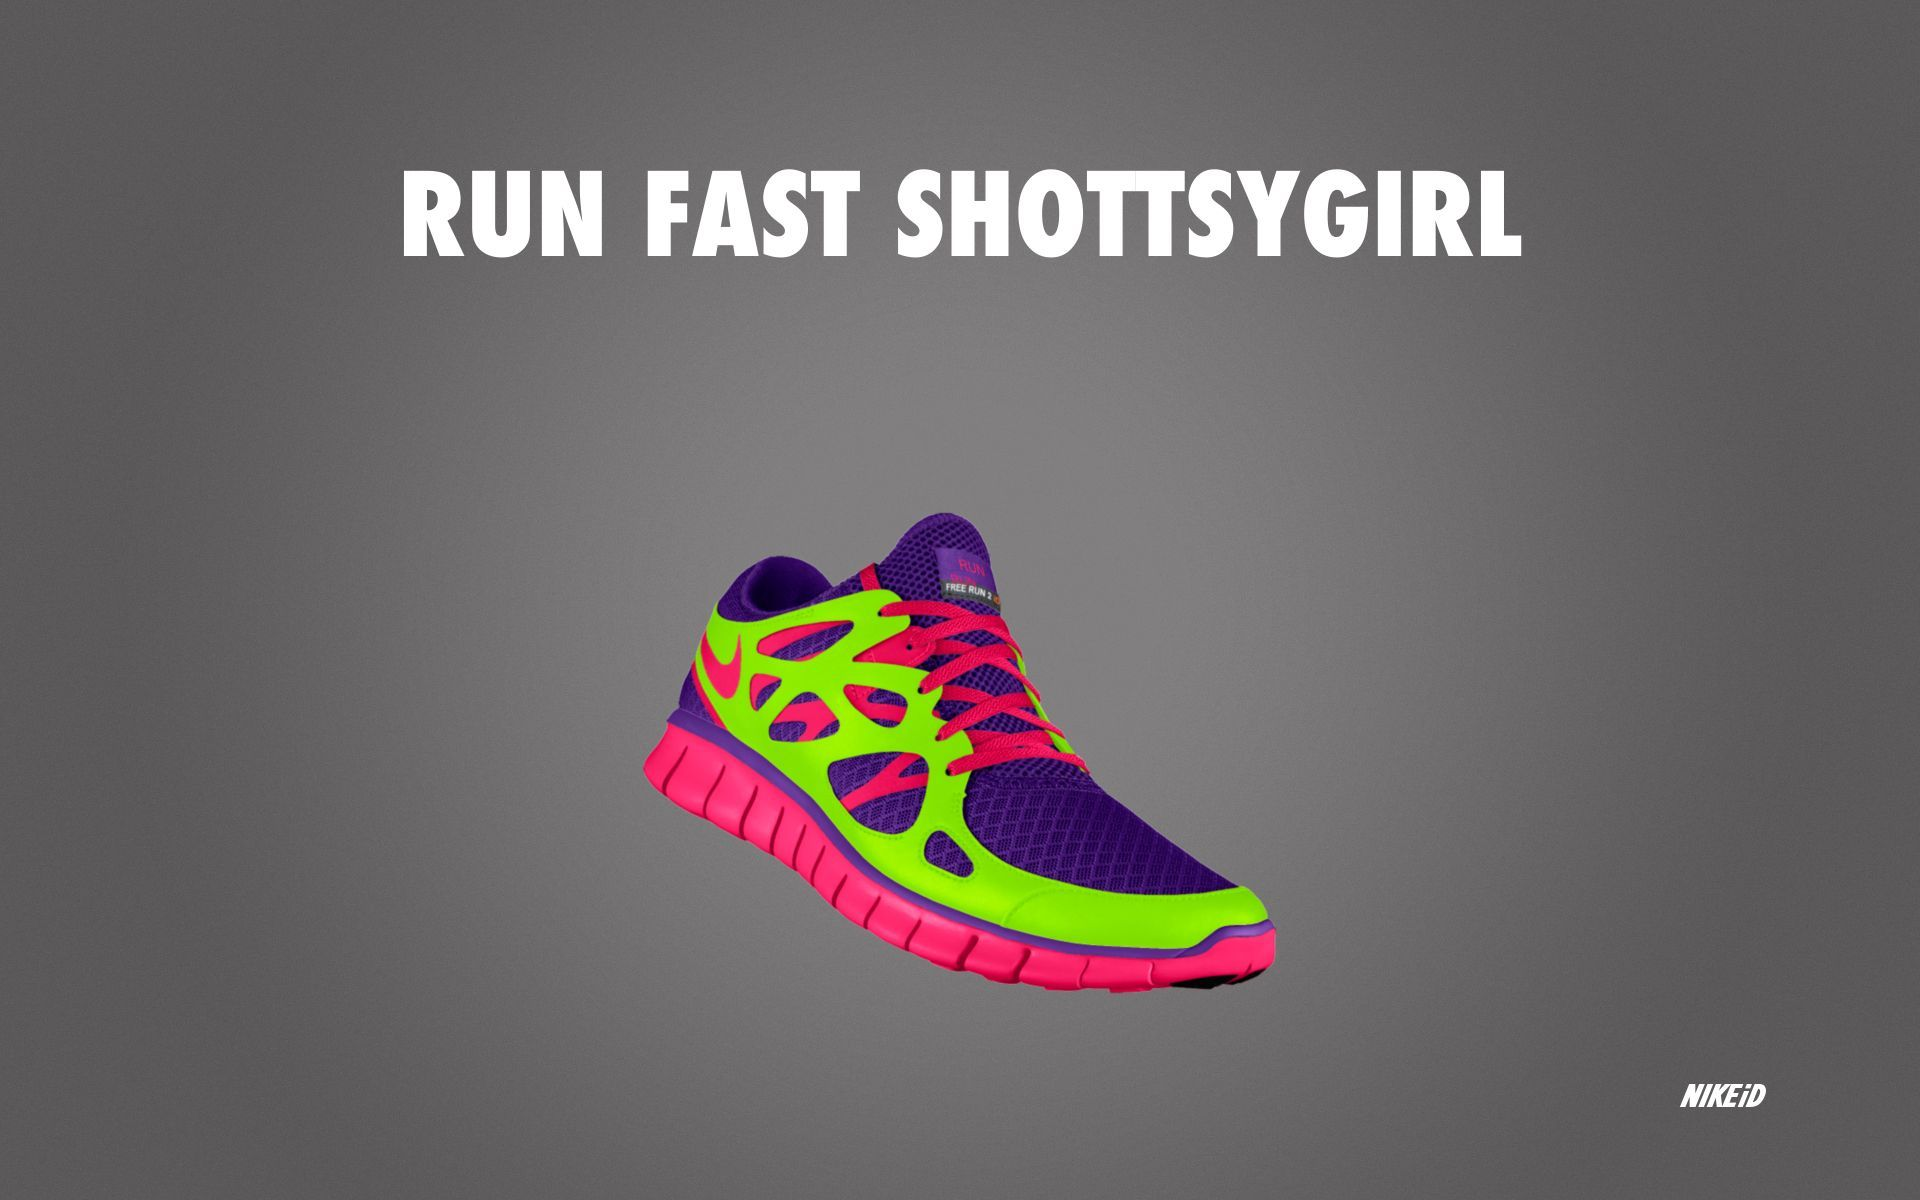 customized running shoes. | Nike id